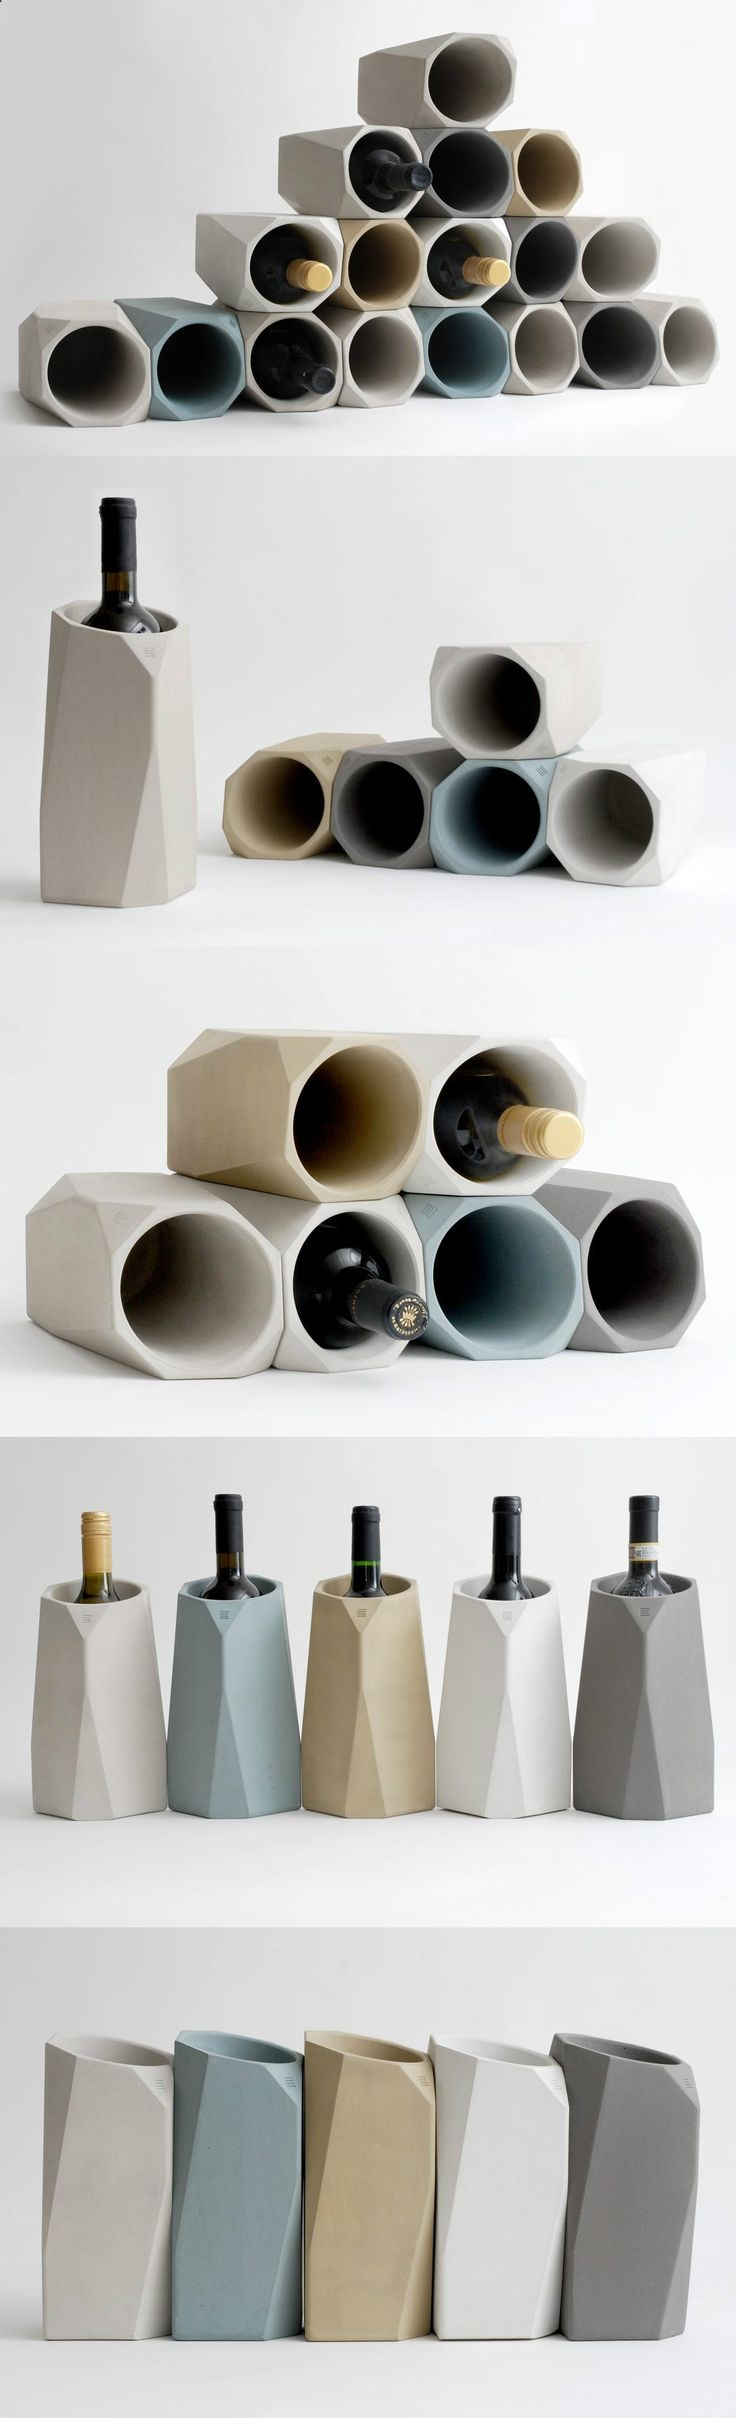 Long gone are the days of bulky buckets filled with ice to keep your wine or champagne chilled   Read Full Story at Yanko Design